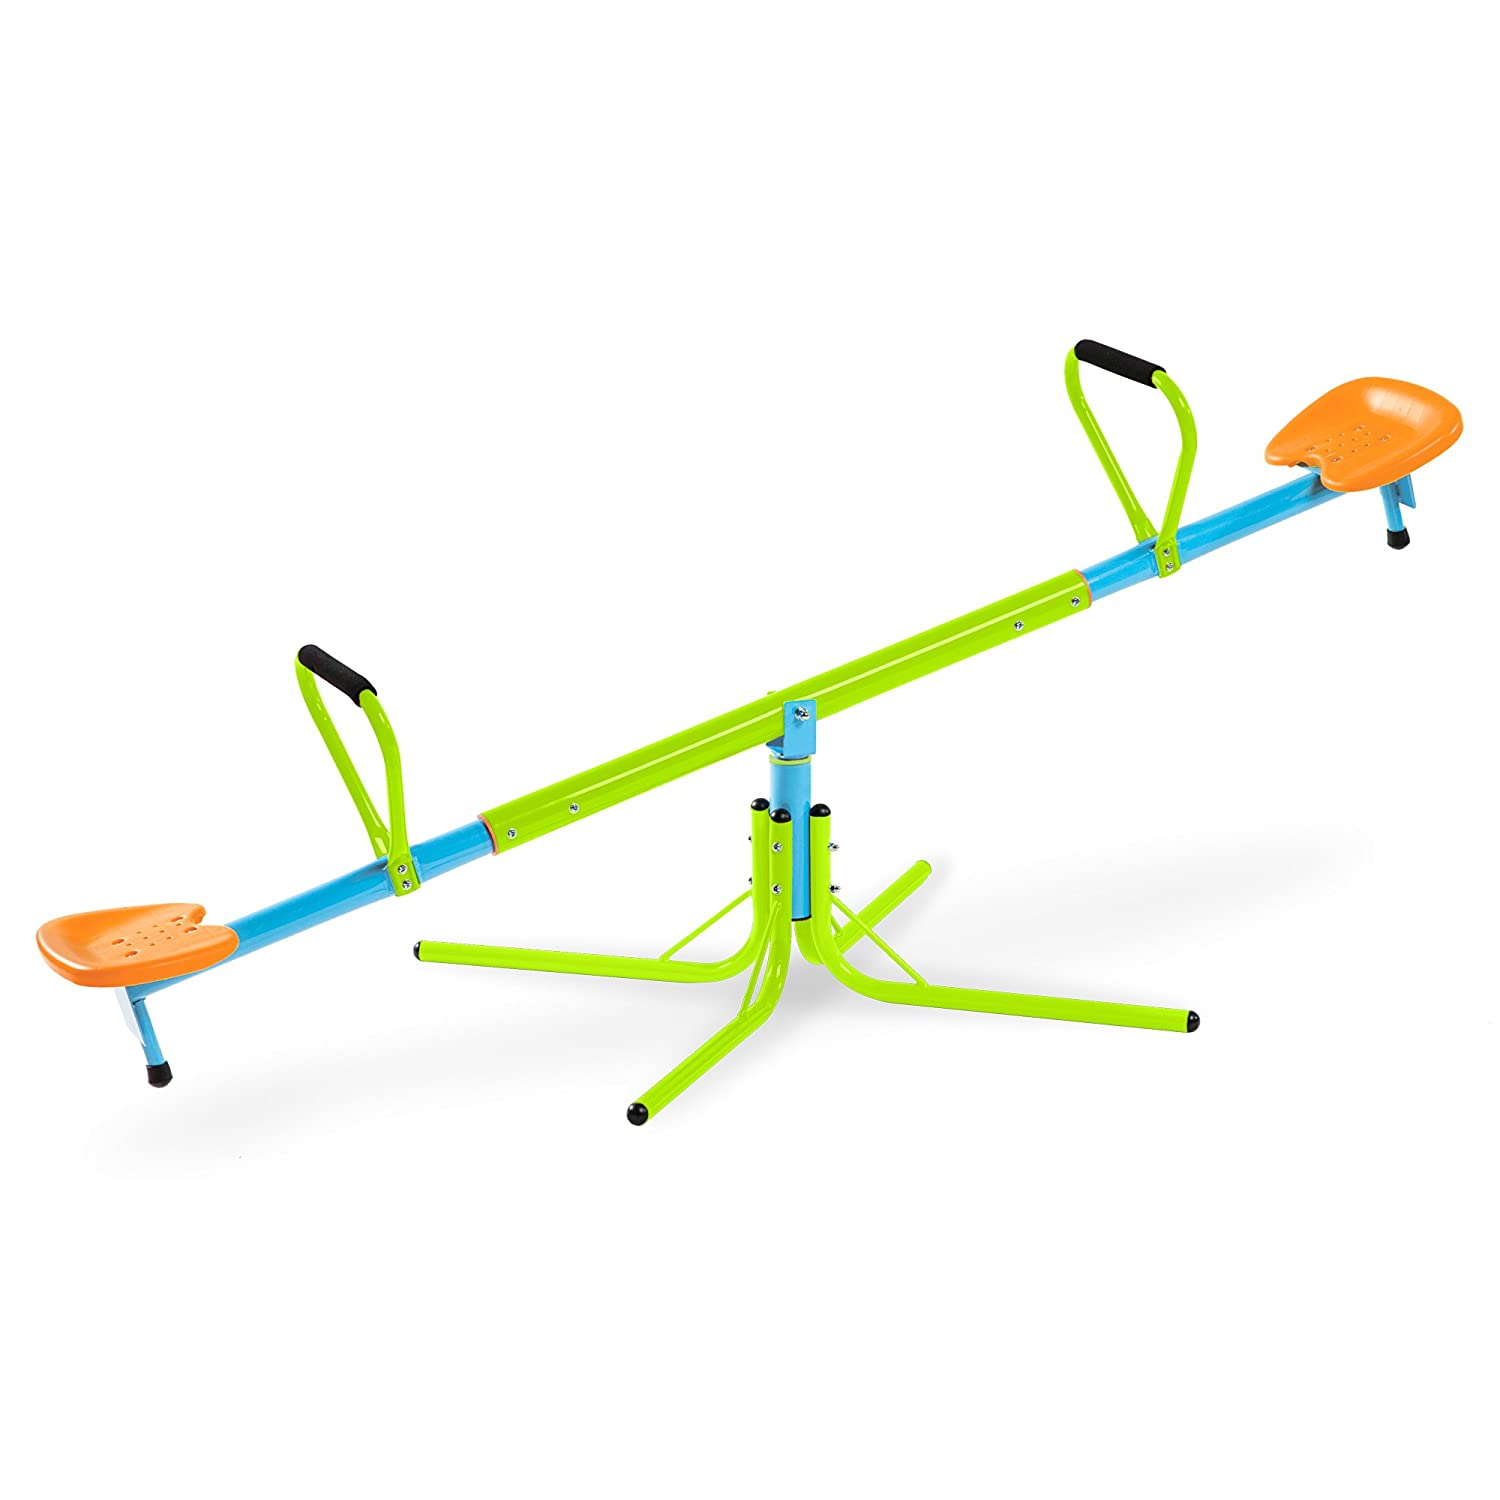 Pure Fun Home Playground Equipment: Swivel Seesaw, Youth Ages 4 to 10 Pure Global 9307SS